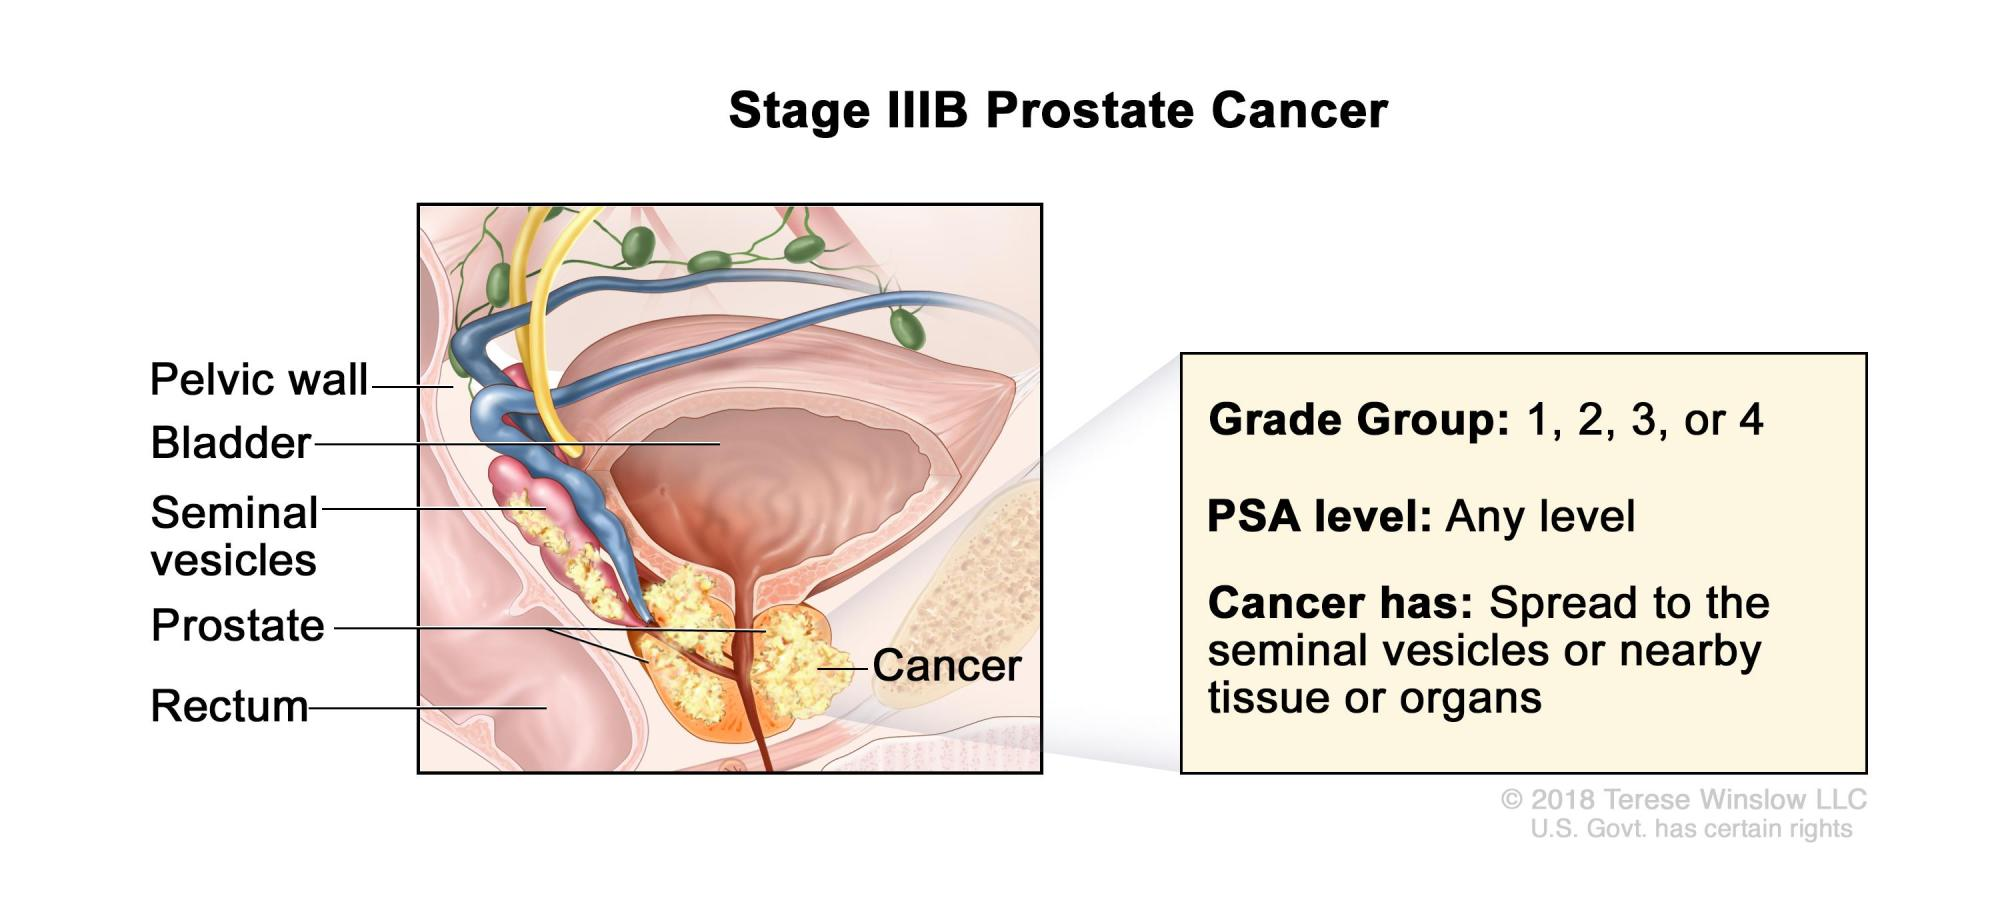 hight resolution of cancer has spread from the prostate to the seminal vesicles or to nearby tissue or organs such as the rectum bladder or pelvic wall